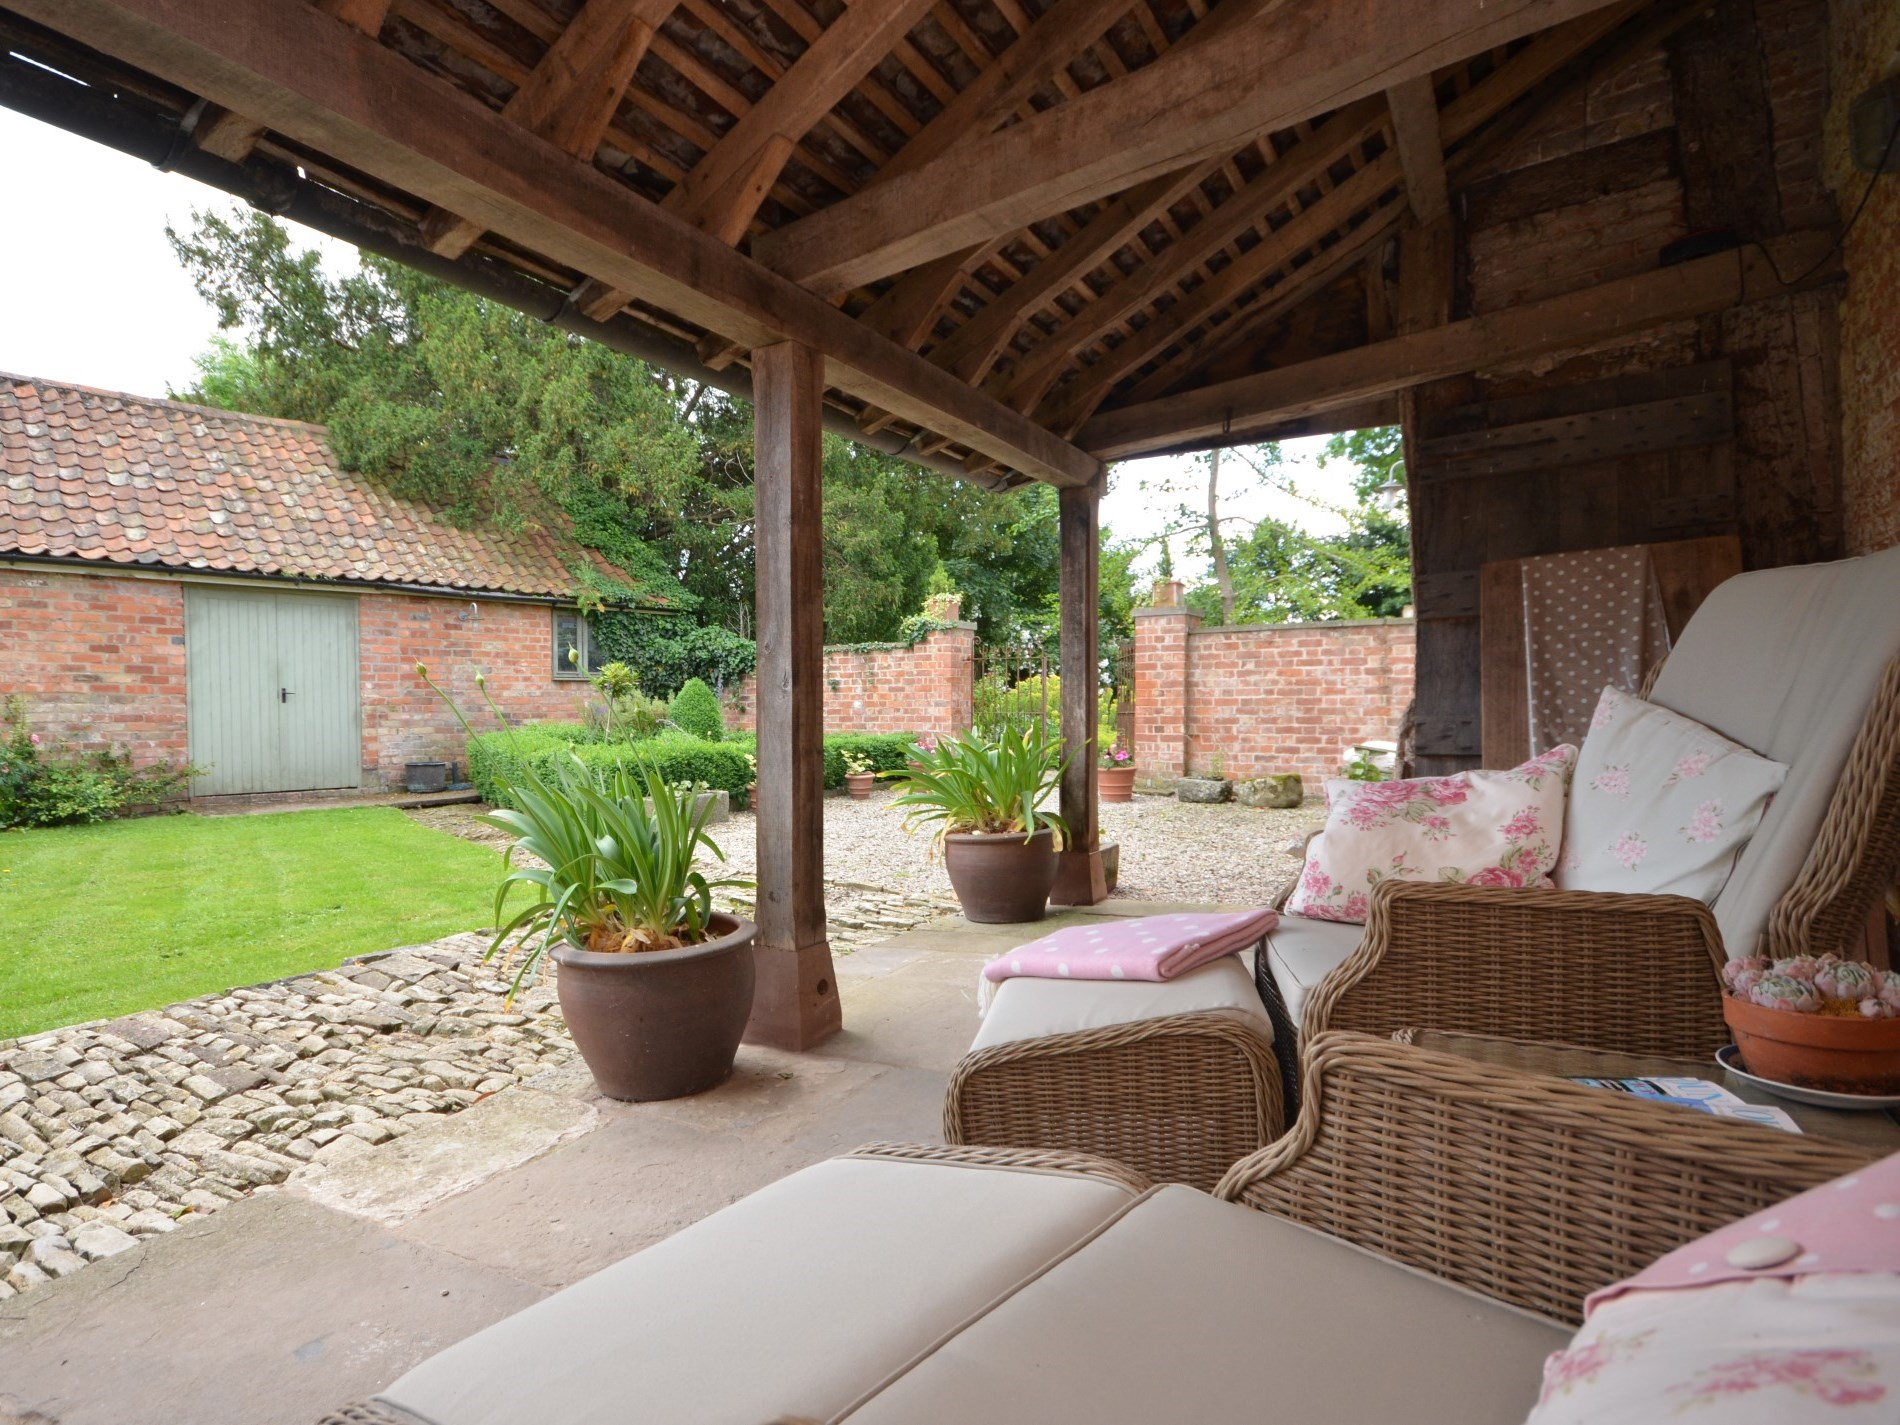 Soak up the sun in the private courtyard garden